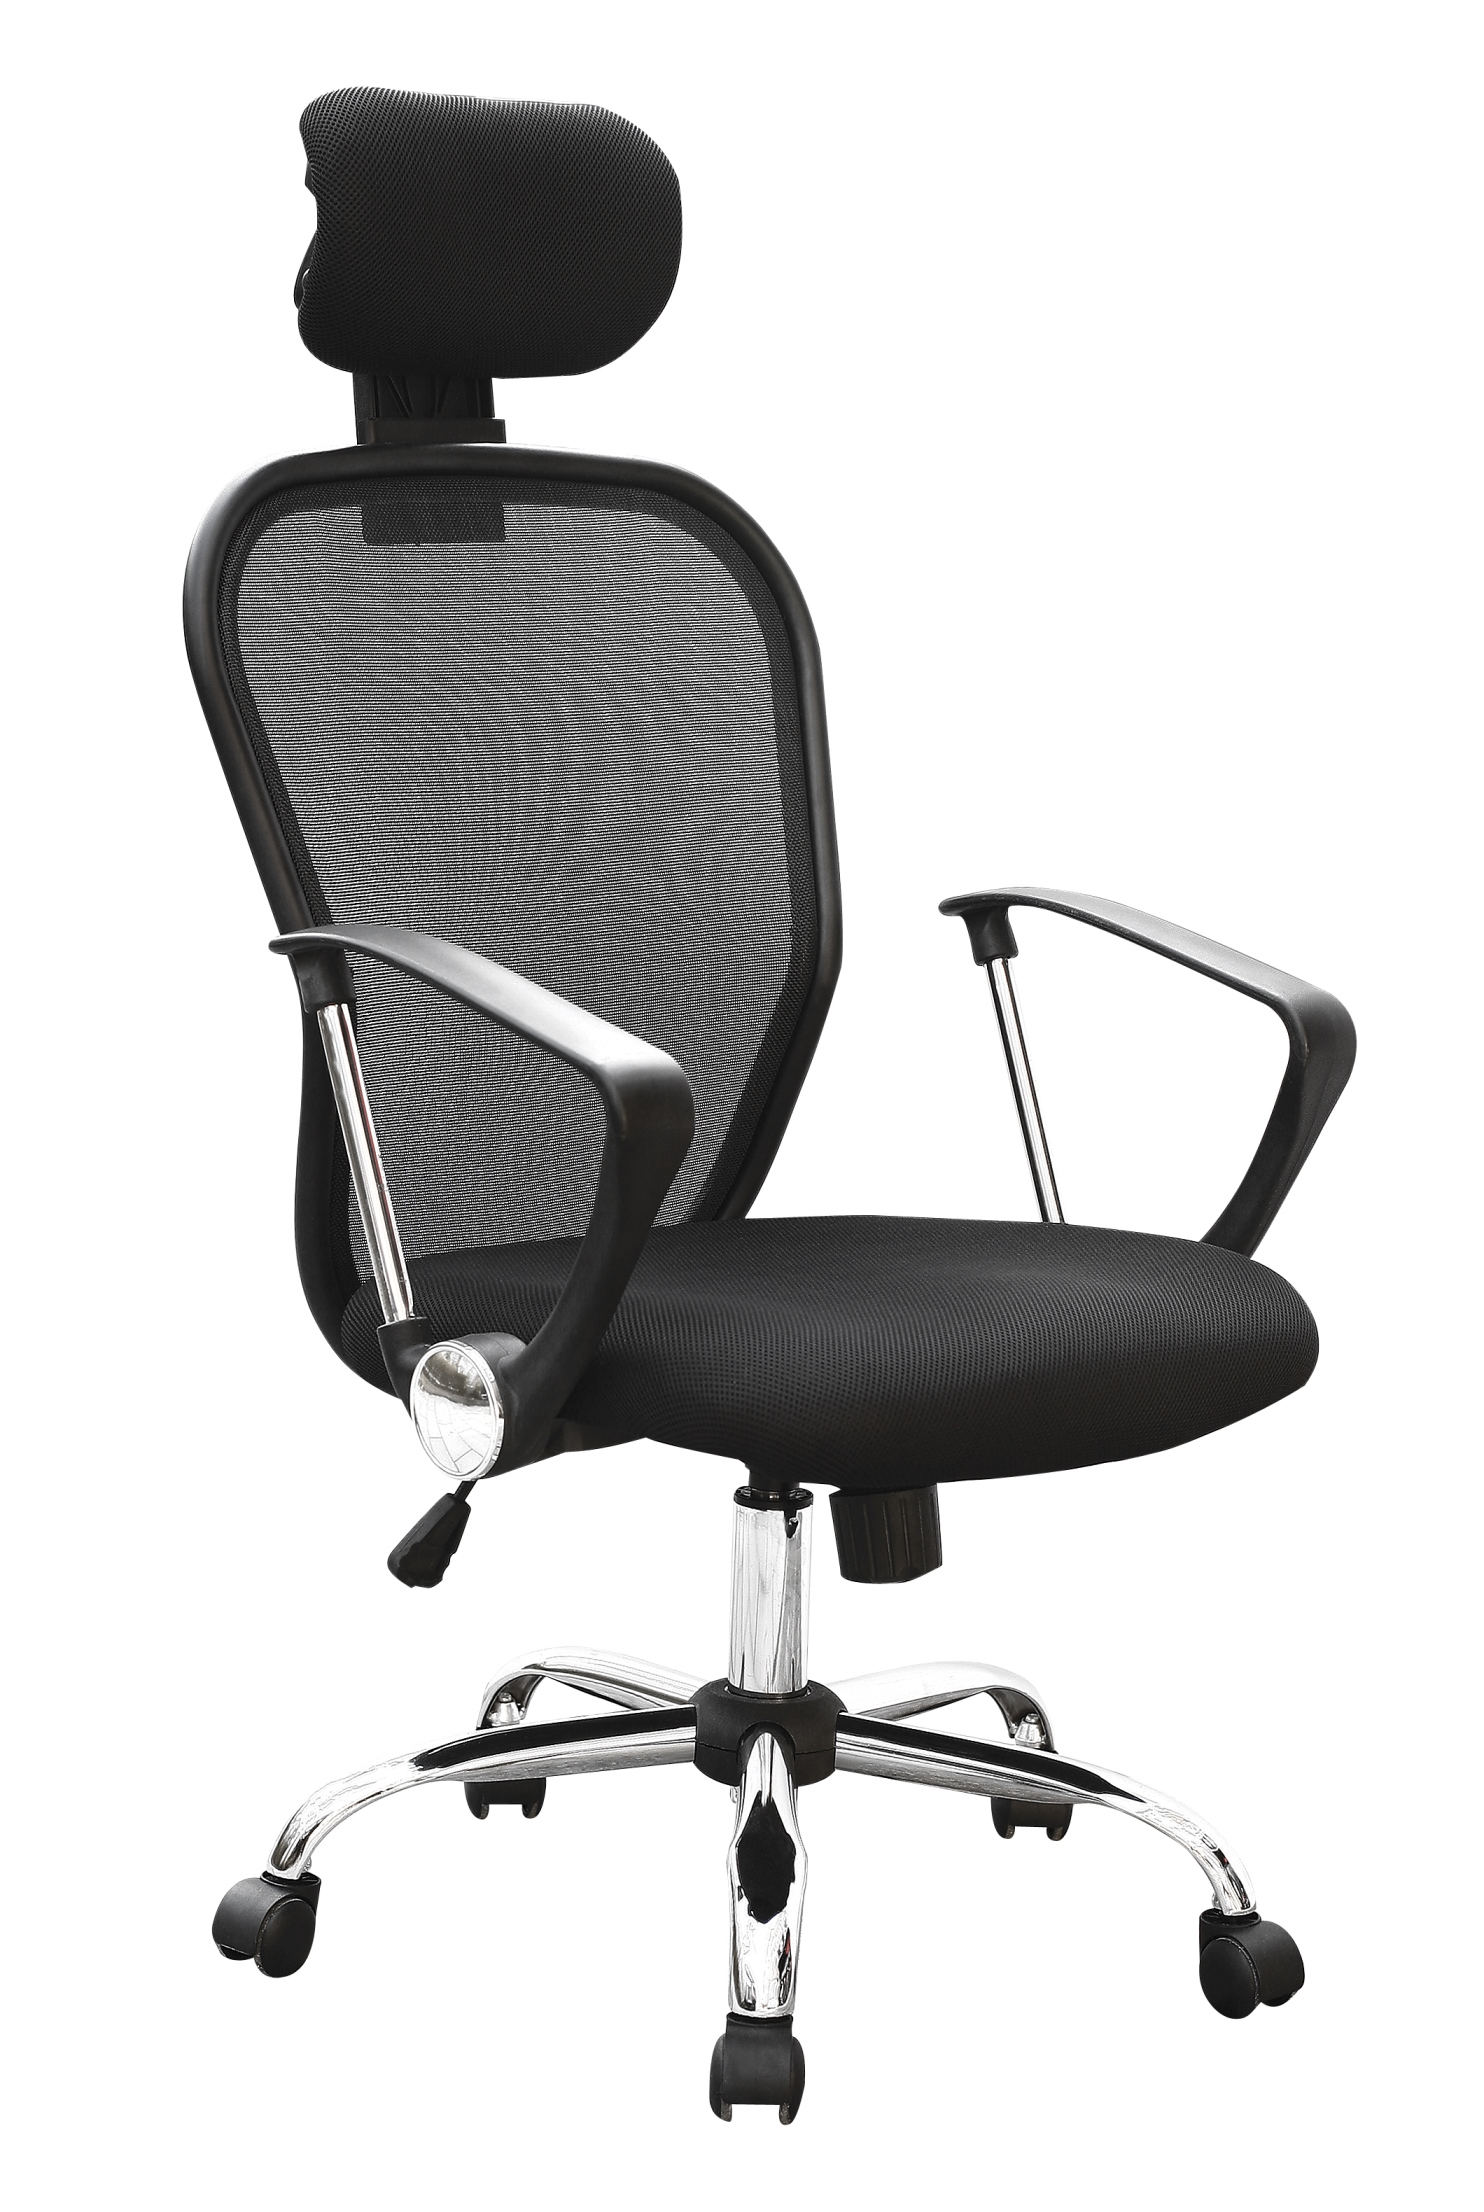 New modern swivel mesh chair executive computer desk for Modern executive office chairs